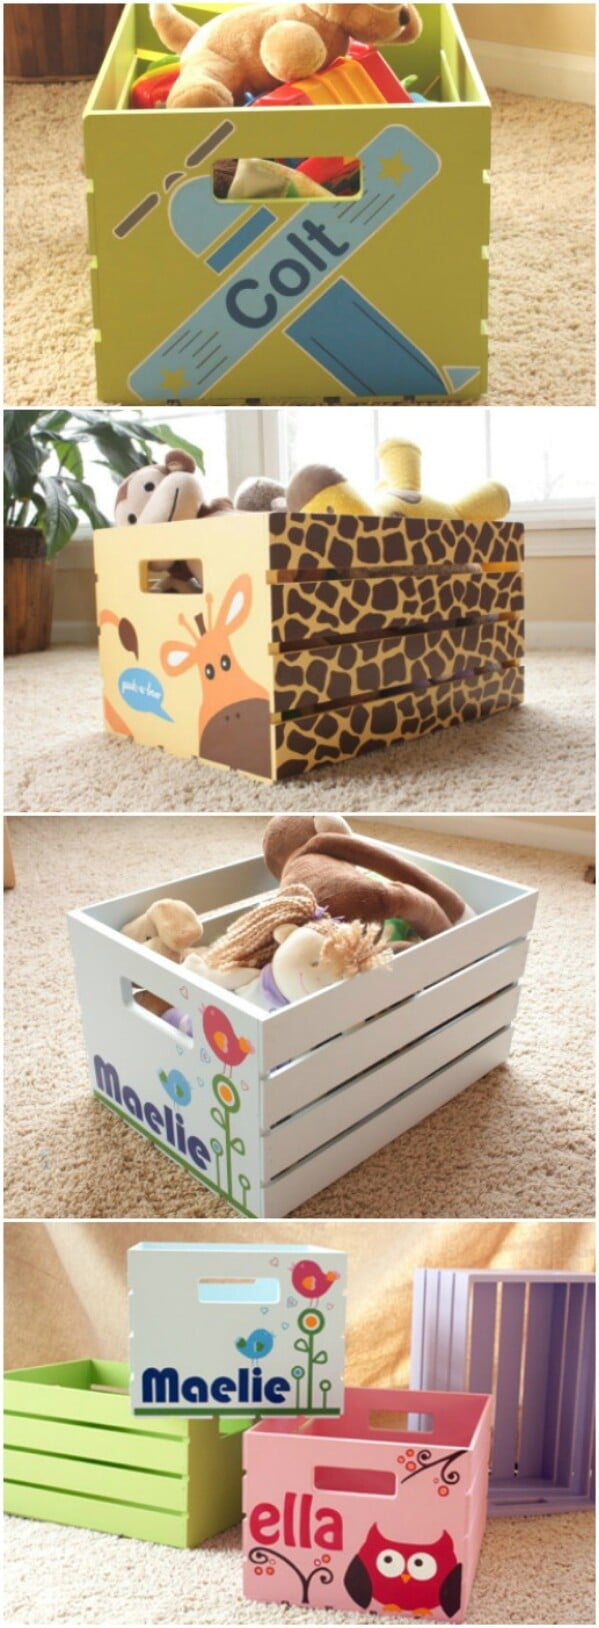 Cute Customized Storage Boxes